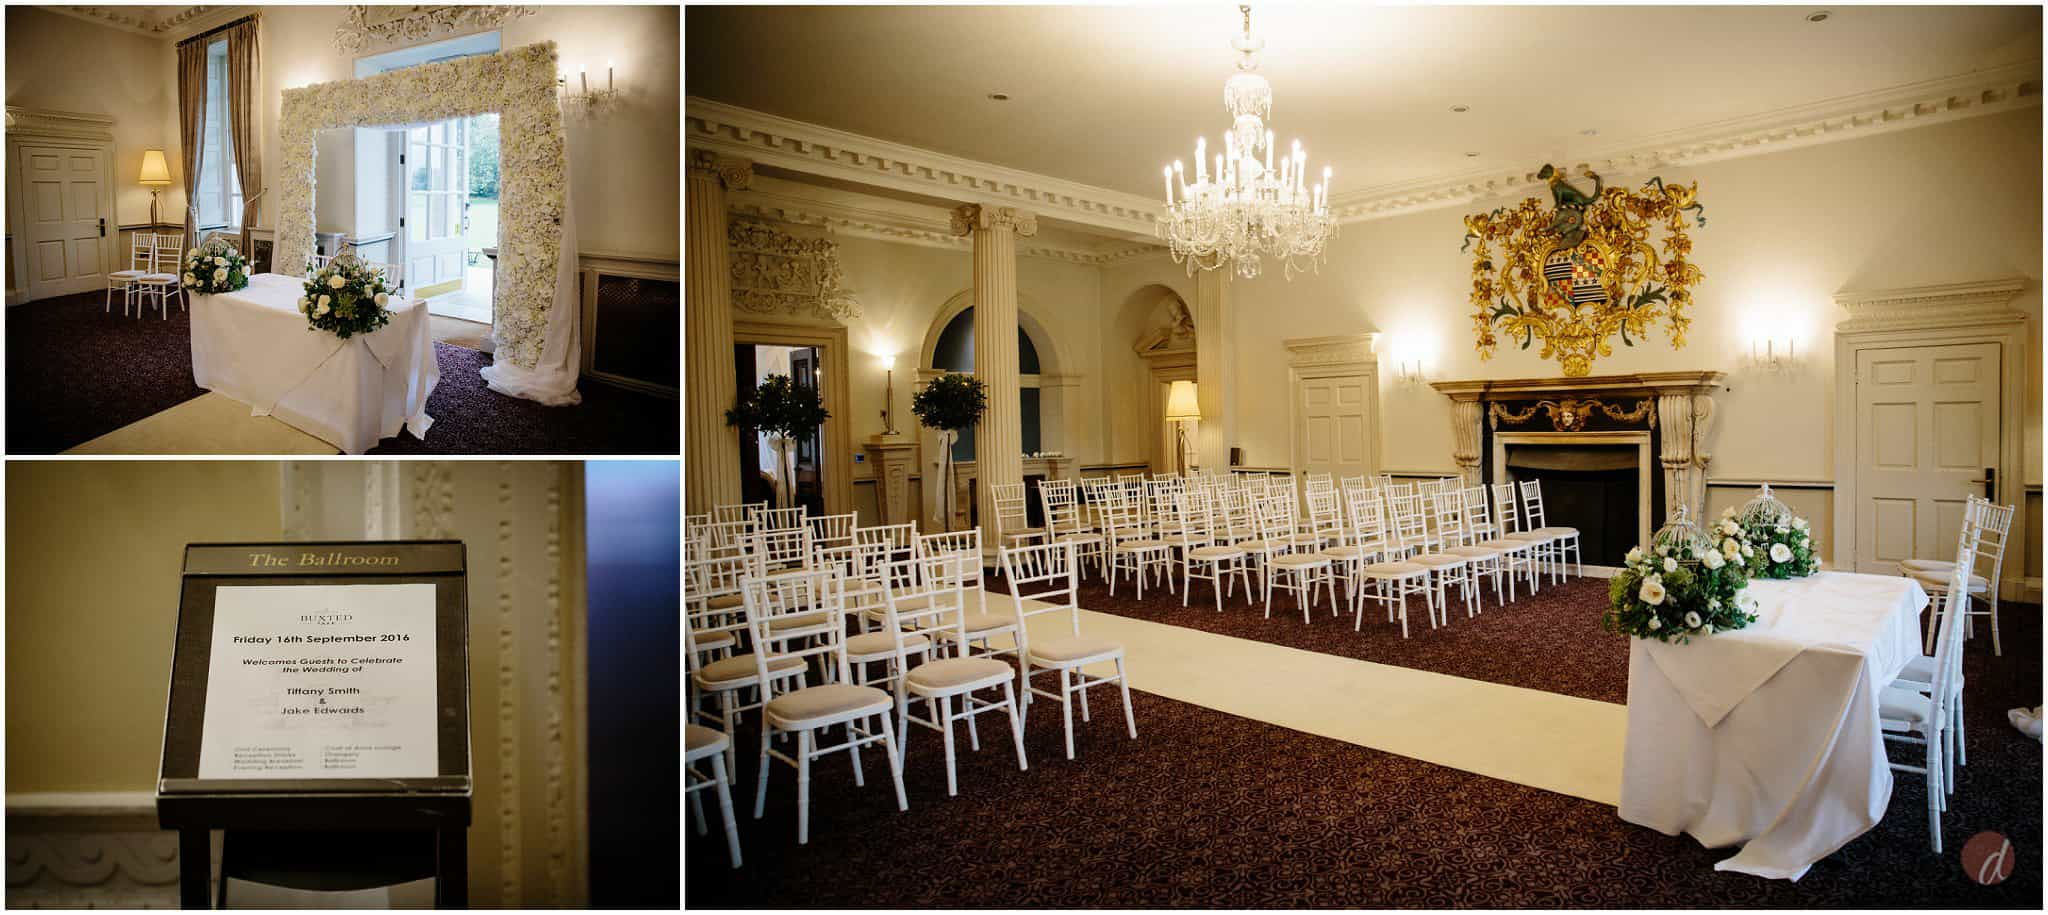 buxted park hotel ceremony room